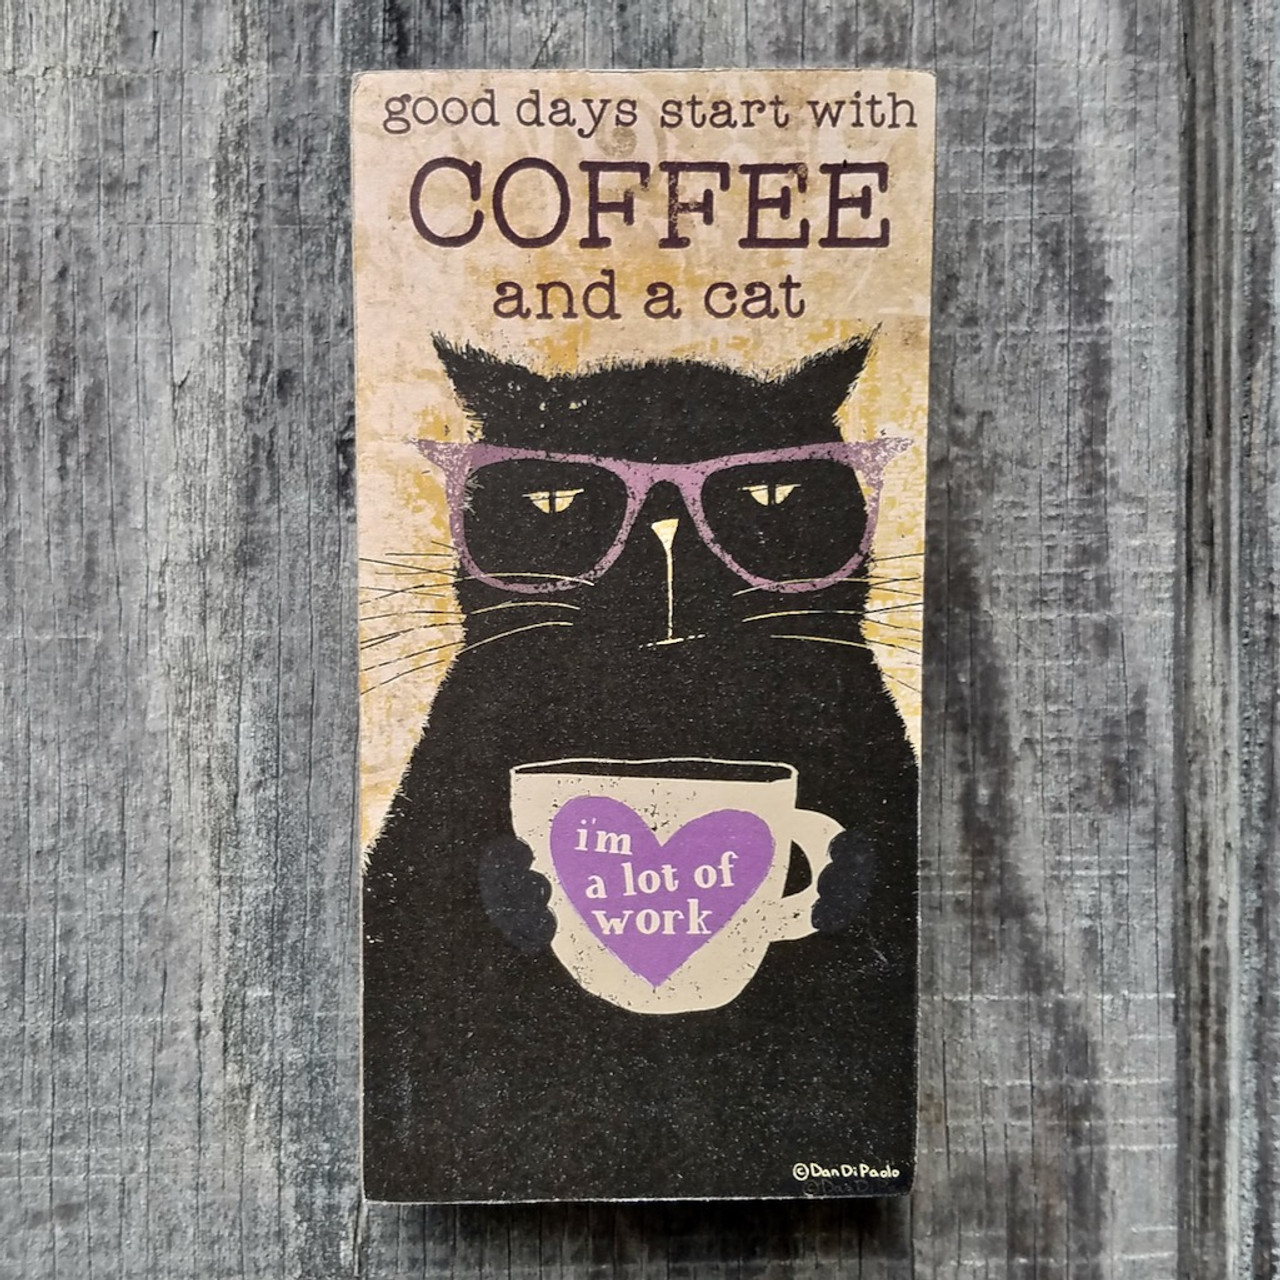 Good Days Start with Coffee and a Cat Wooden Block Sign on Rustic Background